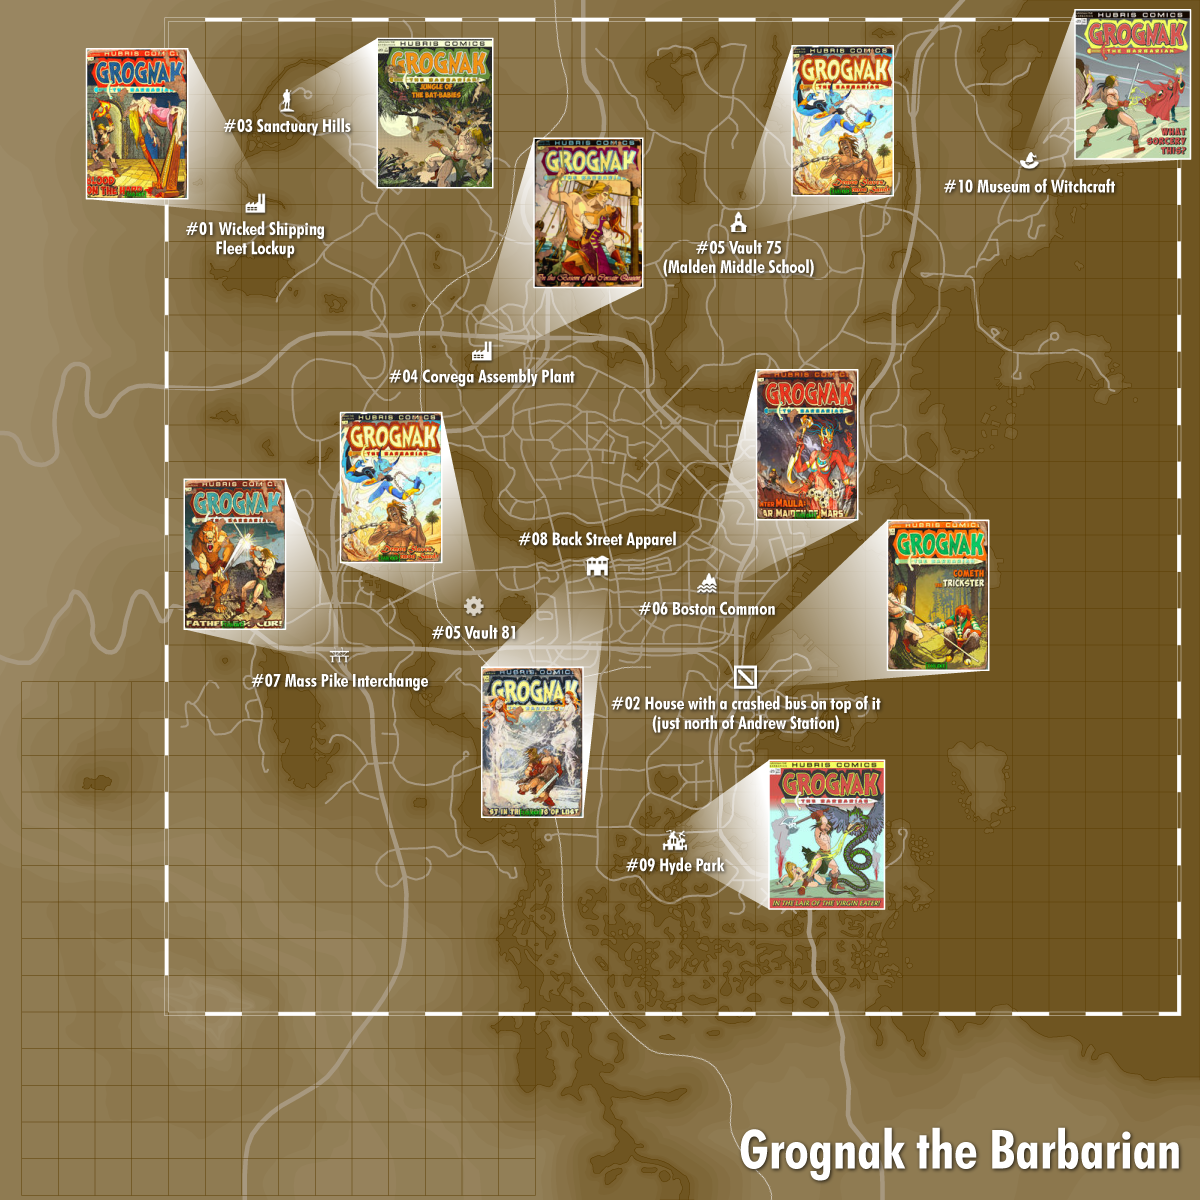 Grognaks Locations Map I Have Found Very Useful Ty To Whomever Did These Fallout4 Gaming Fallout 4 Locations Fallout 4 Settlement Ideas Fallout 4 Magazines